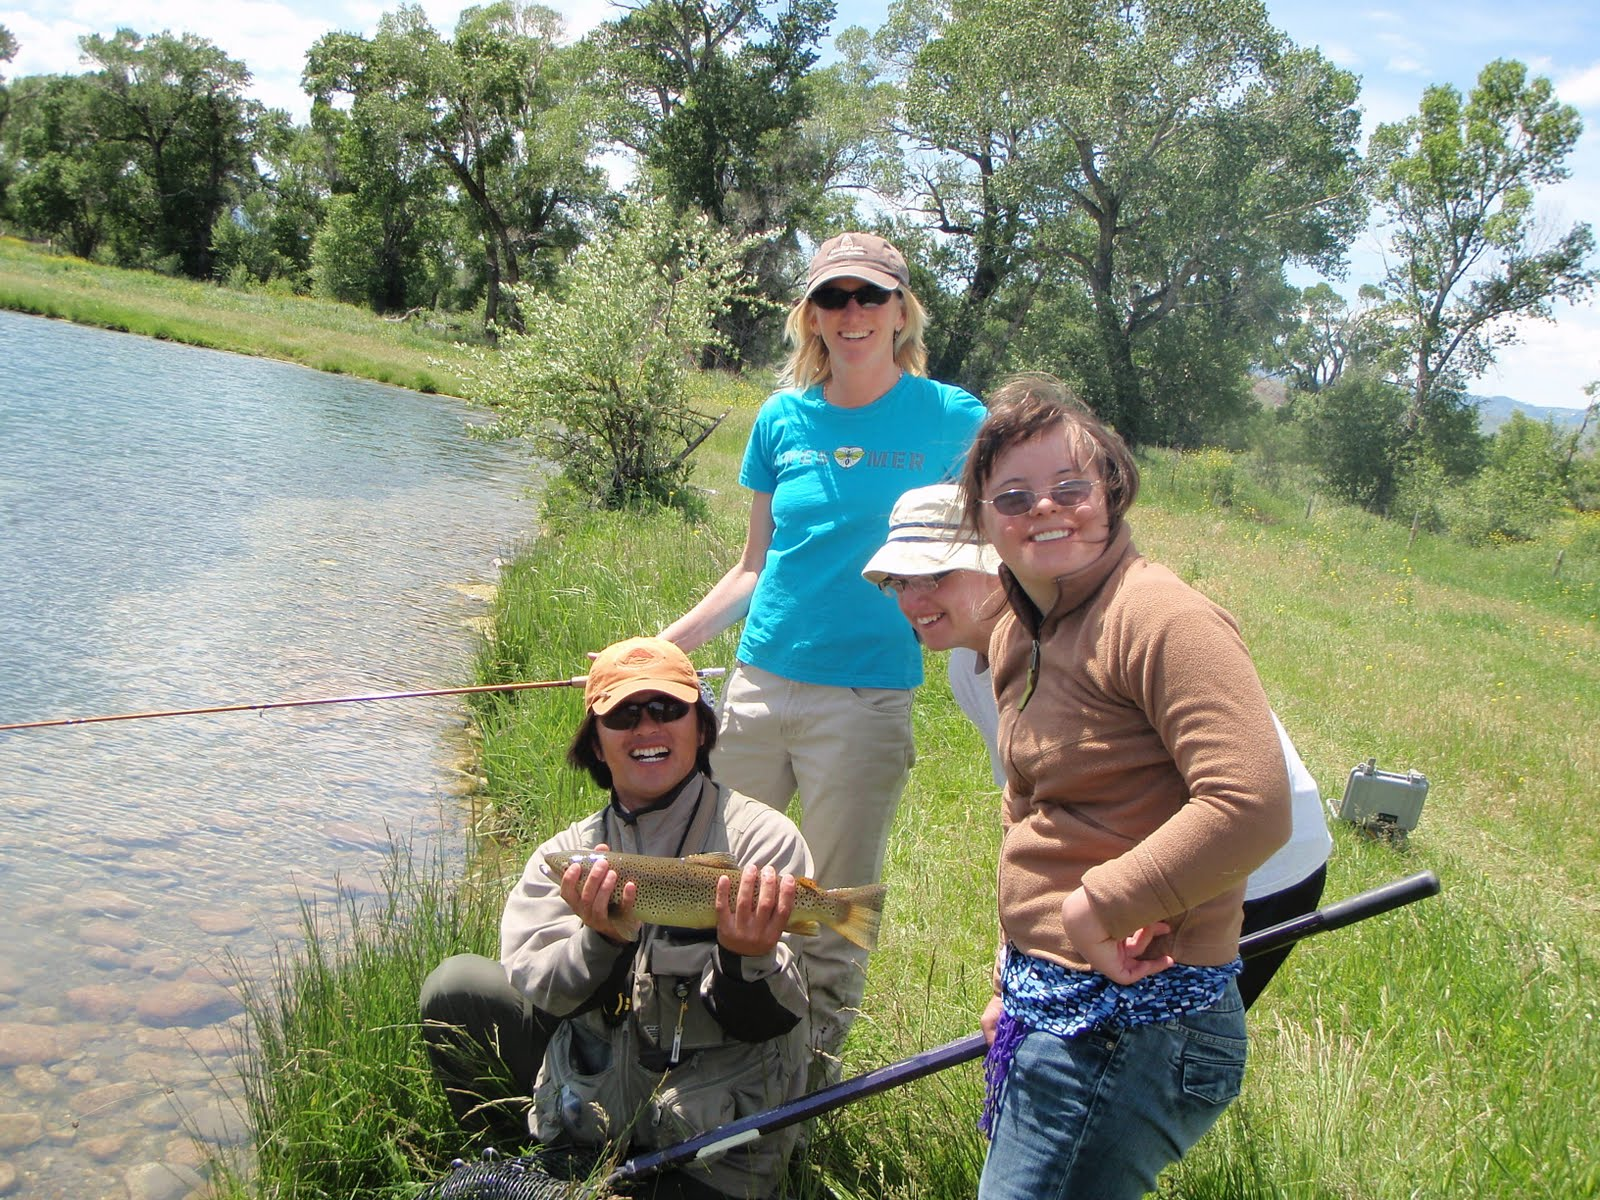 trout run spanish girl personals Fly fishing in spain: guided fly fishing trips for trout to pristine mountain rivers in  the spanish pyrenees 100% dry fly & spectacular scenery.